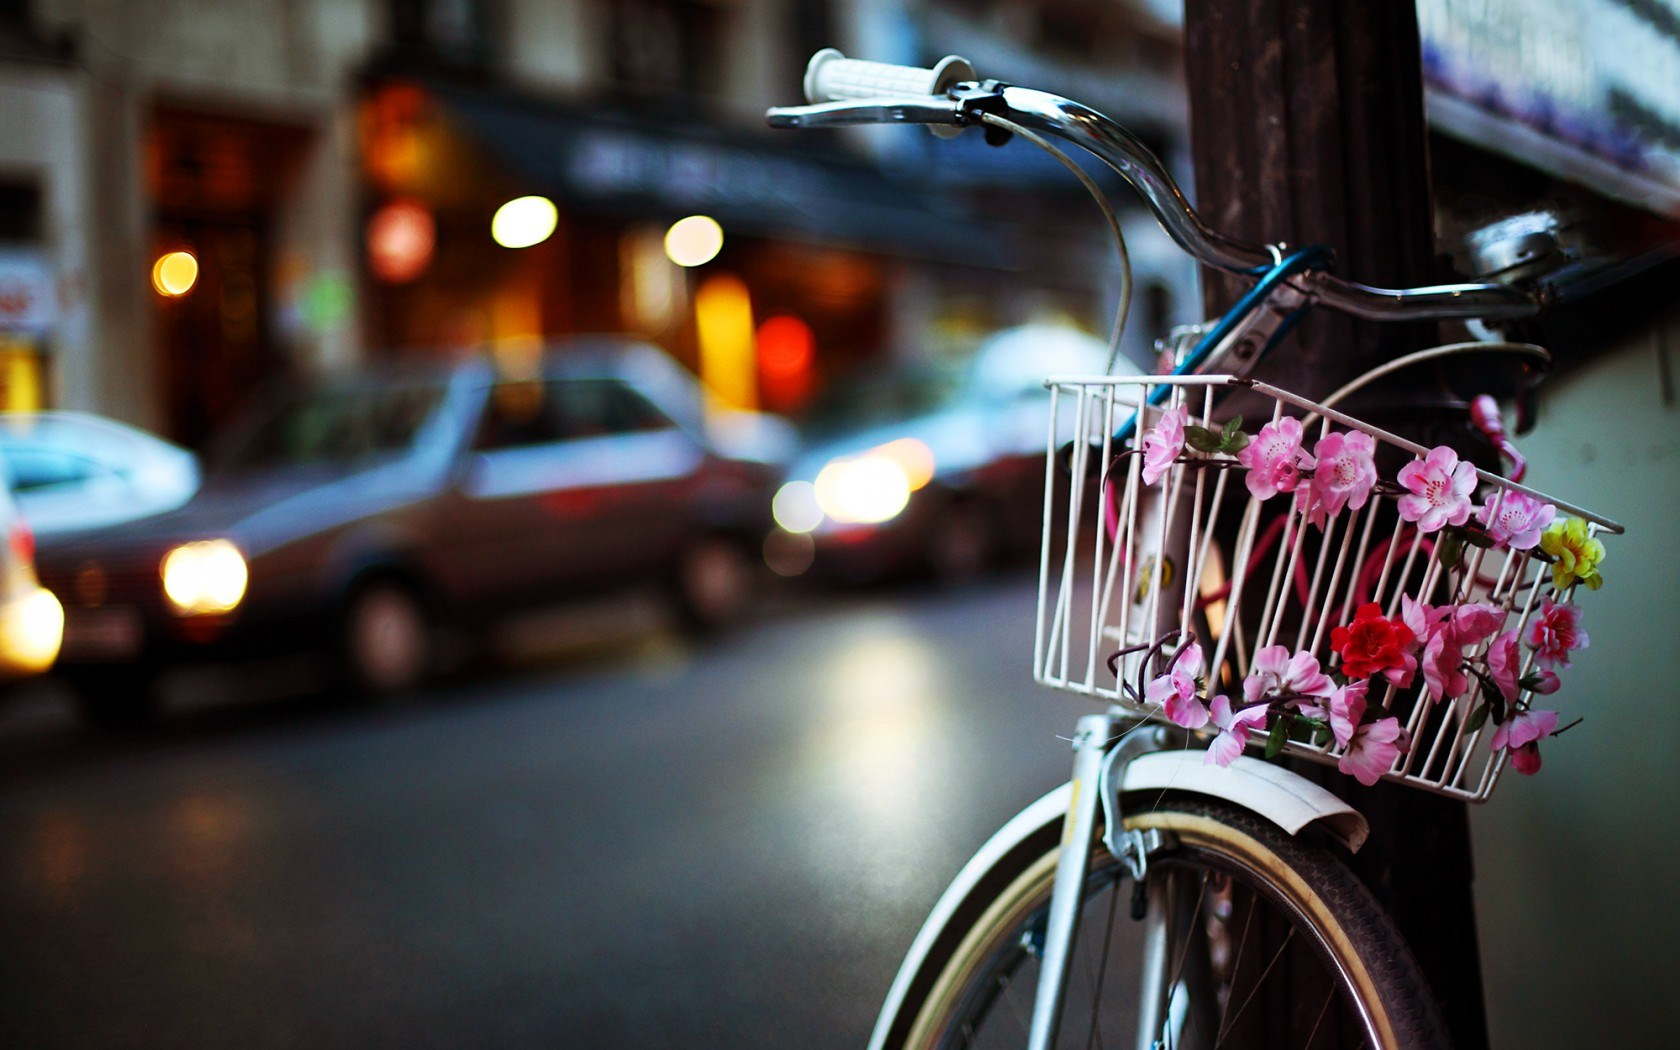 Bicycle Basket Flowers City Evening Lights